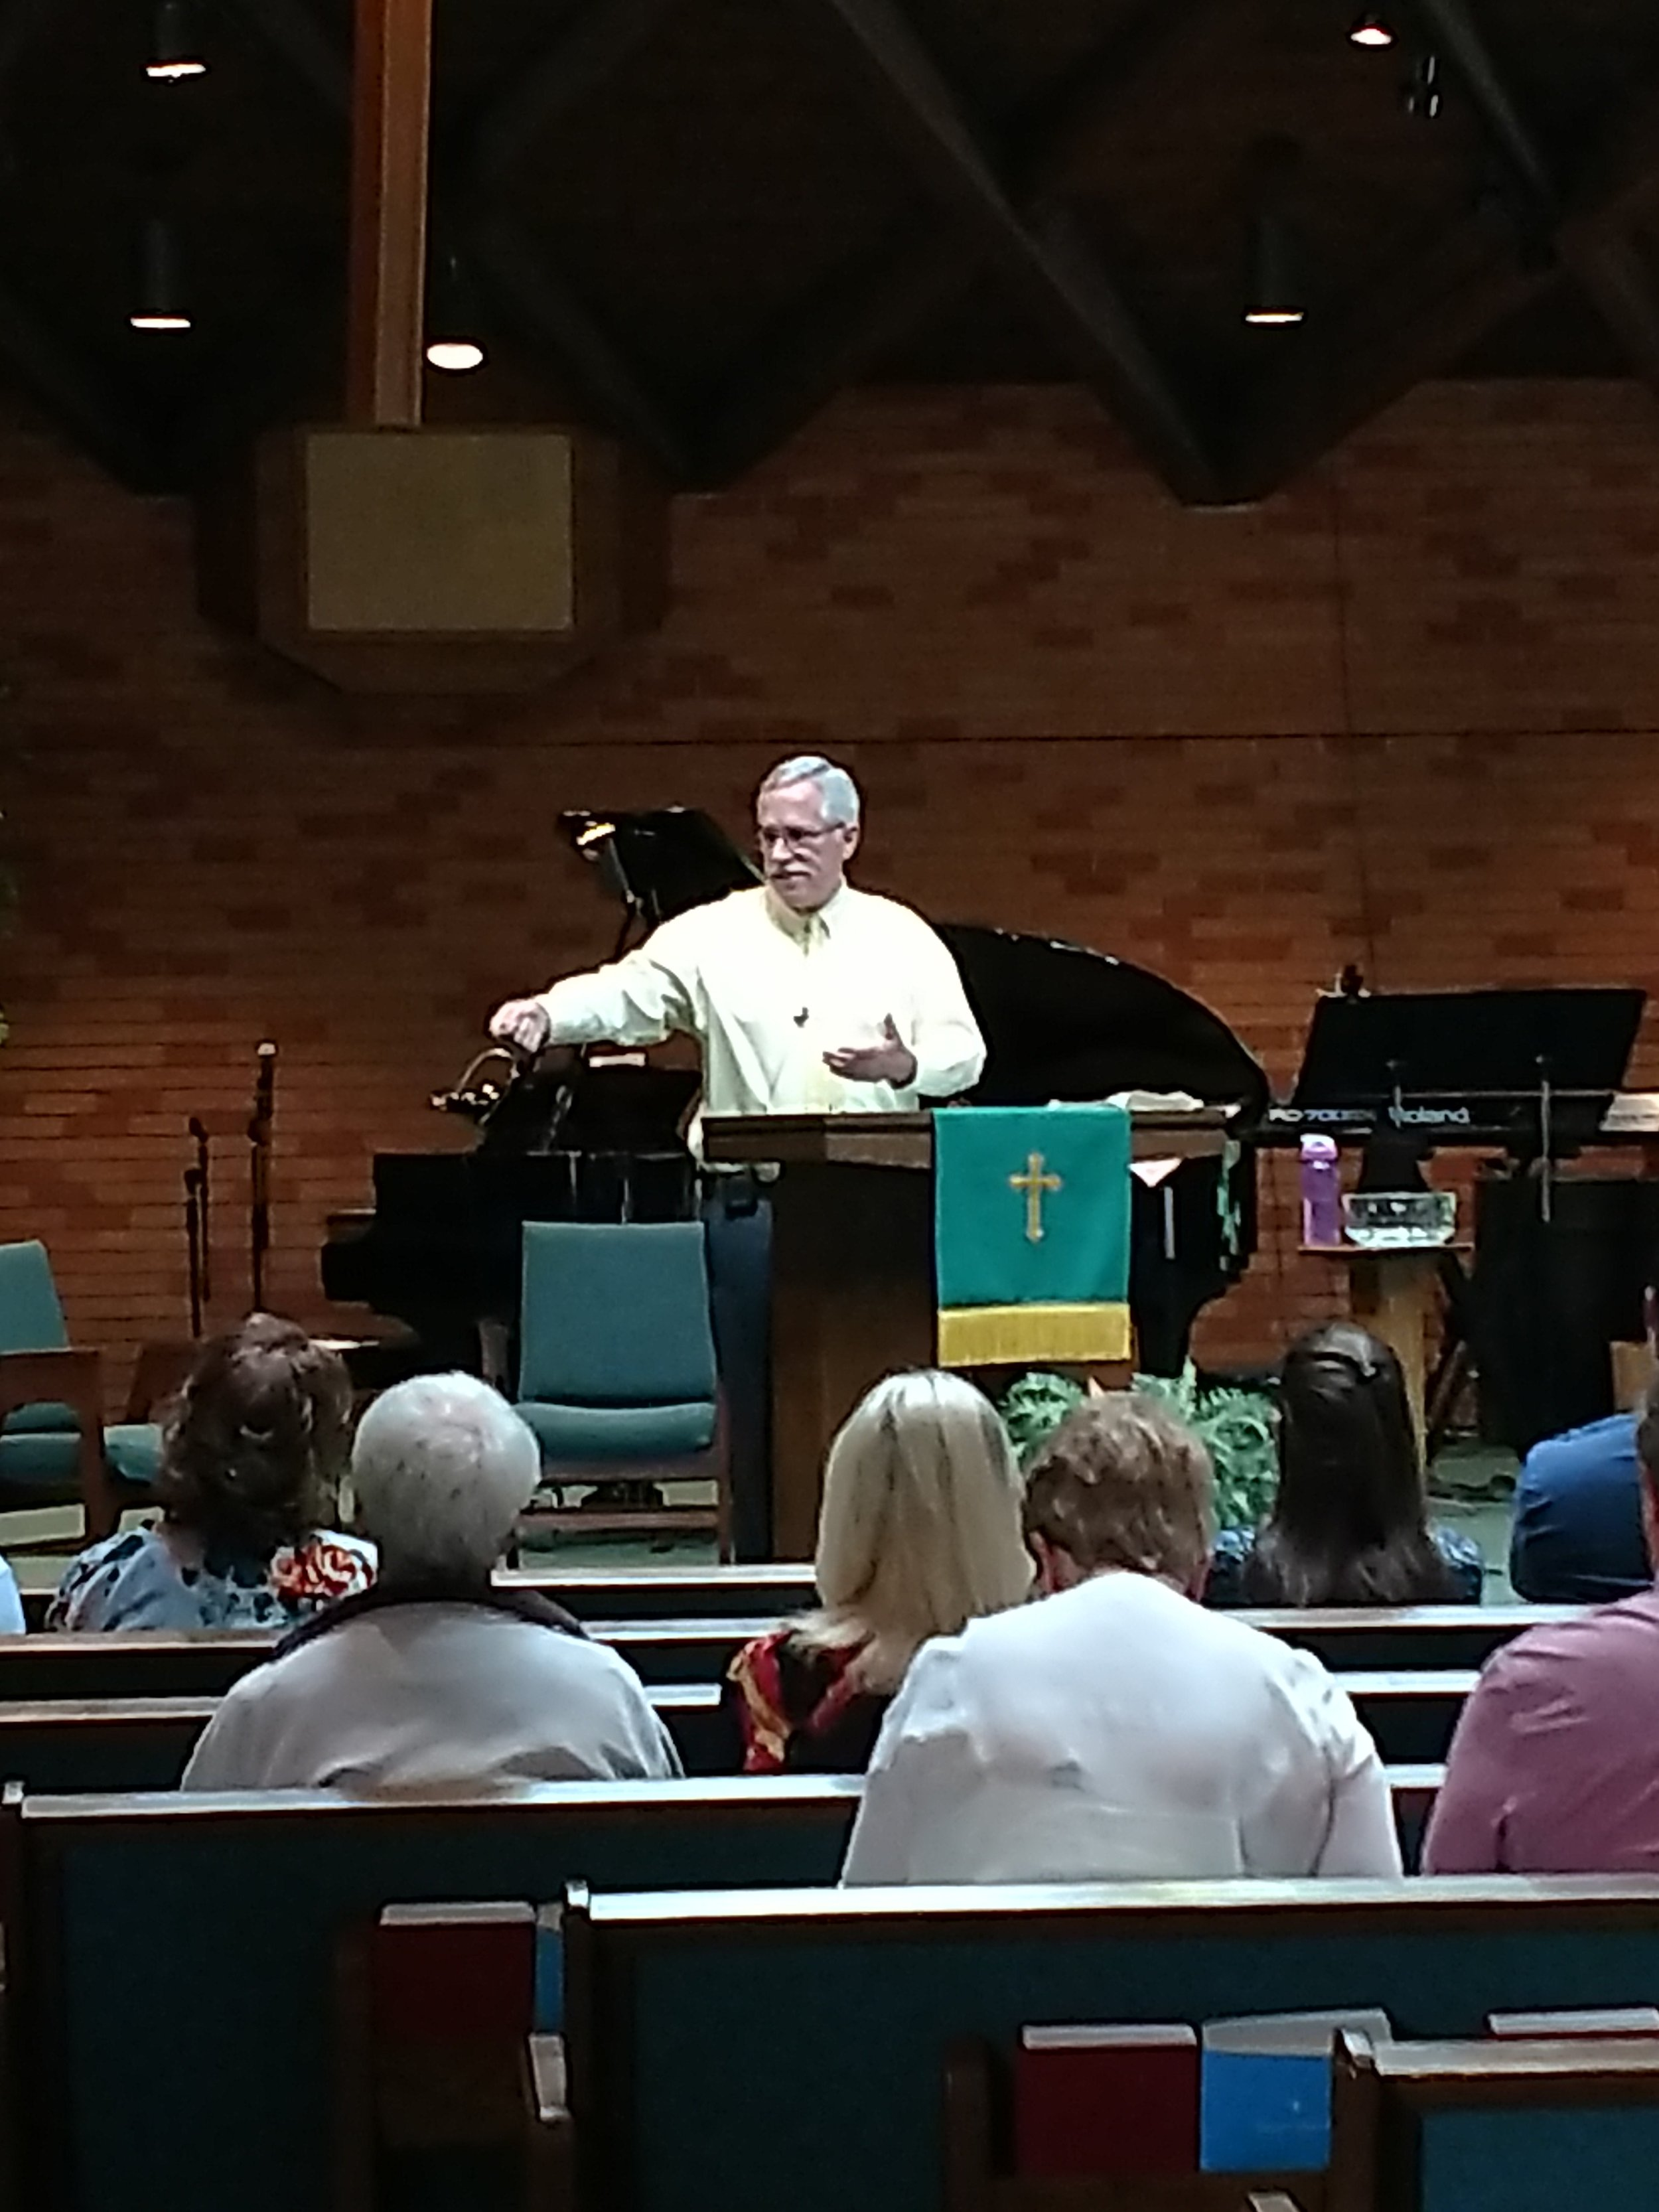 - Dr. Don preaching God's grace at Skyview Presbyterian Church in America. Skyview is located at 251 E. Sterne Blvd, Centennial, CO.